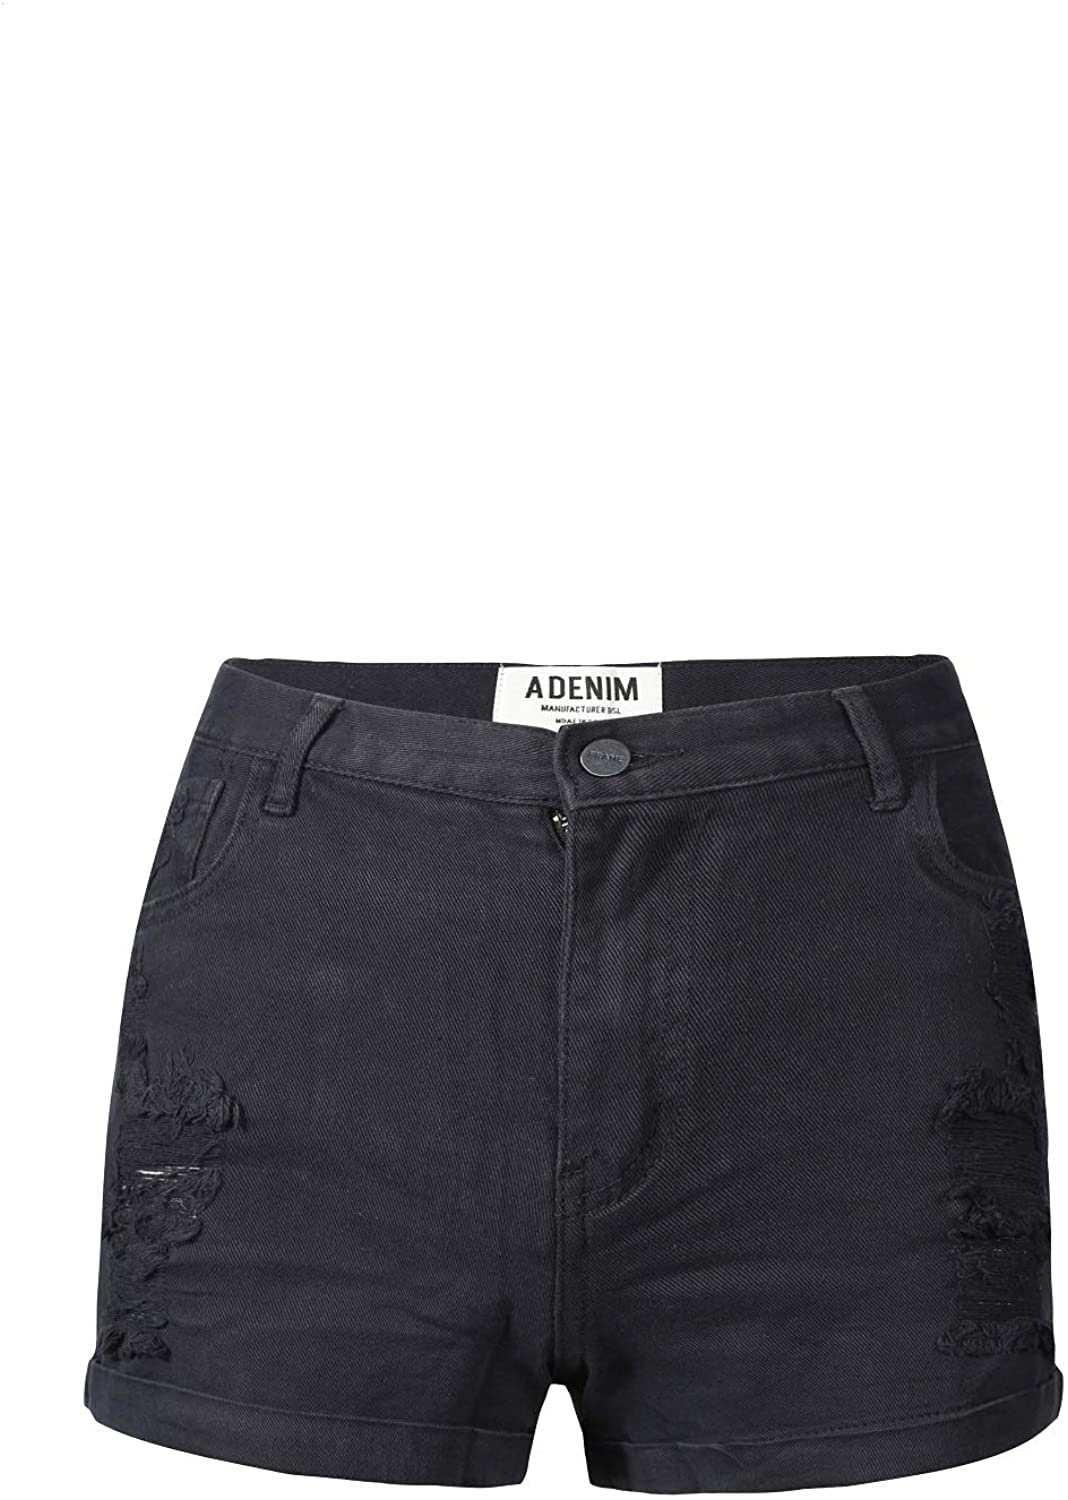 GOU ZHU 'S Distressed Denim Jean Shorts Butt Lifting Push Up Shorts For Women